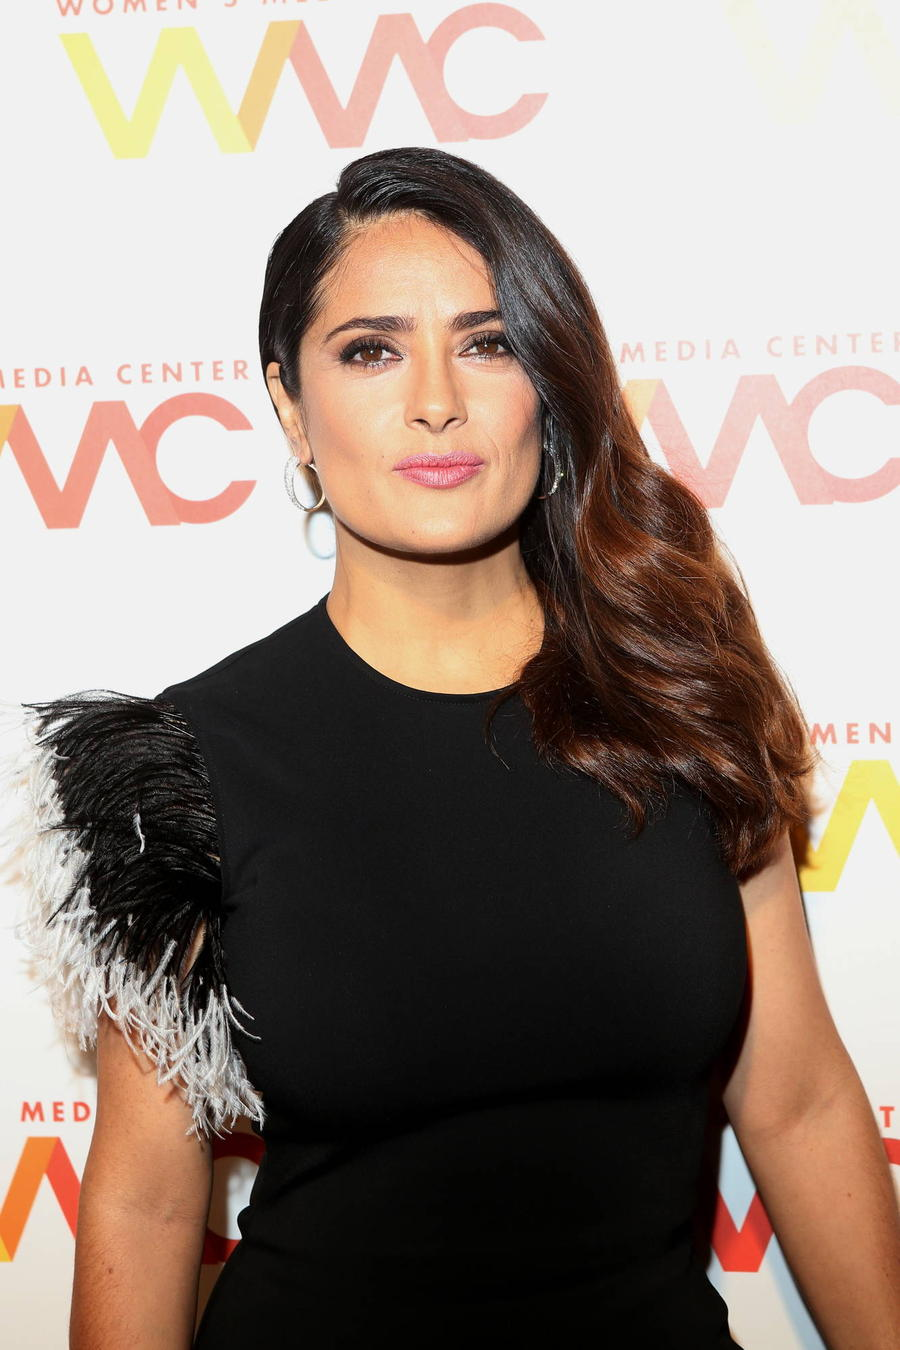 Salma Hayek Relieved Kim Kardashian's Children Escaped Robbery Drama